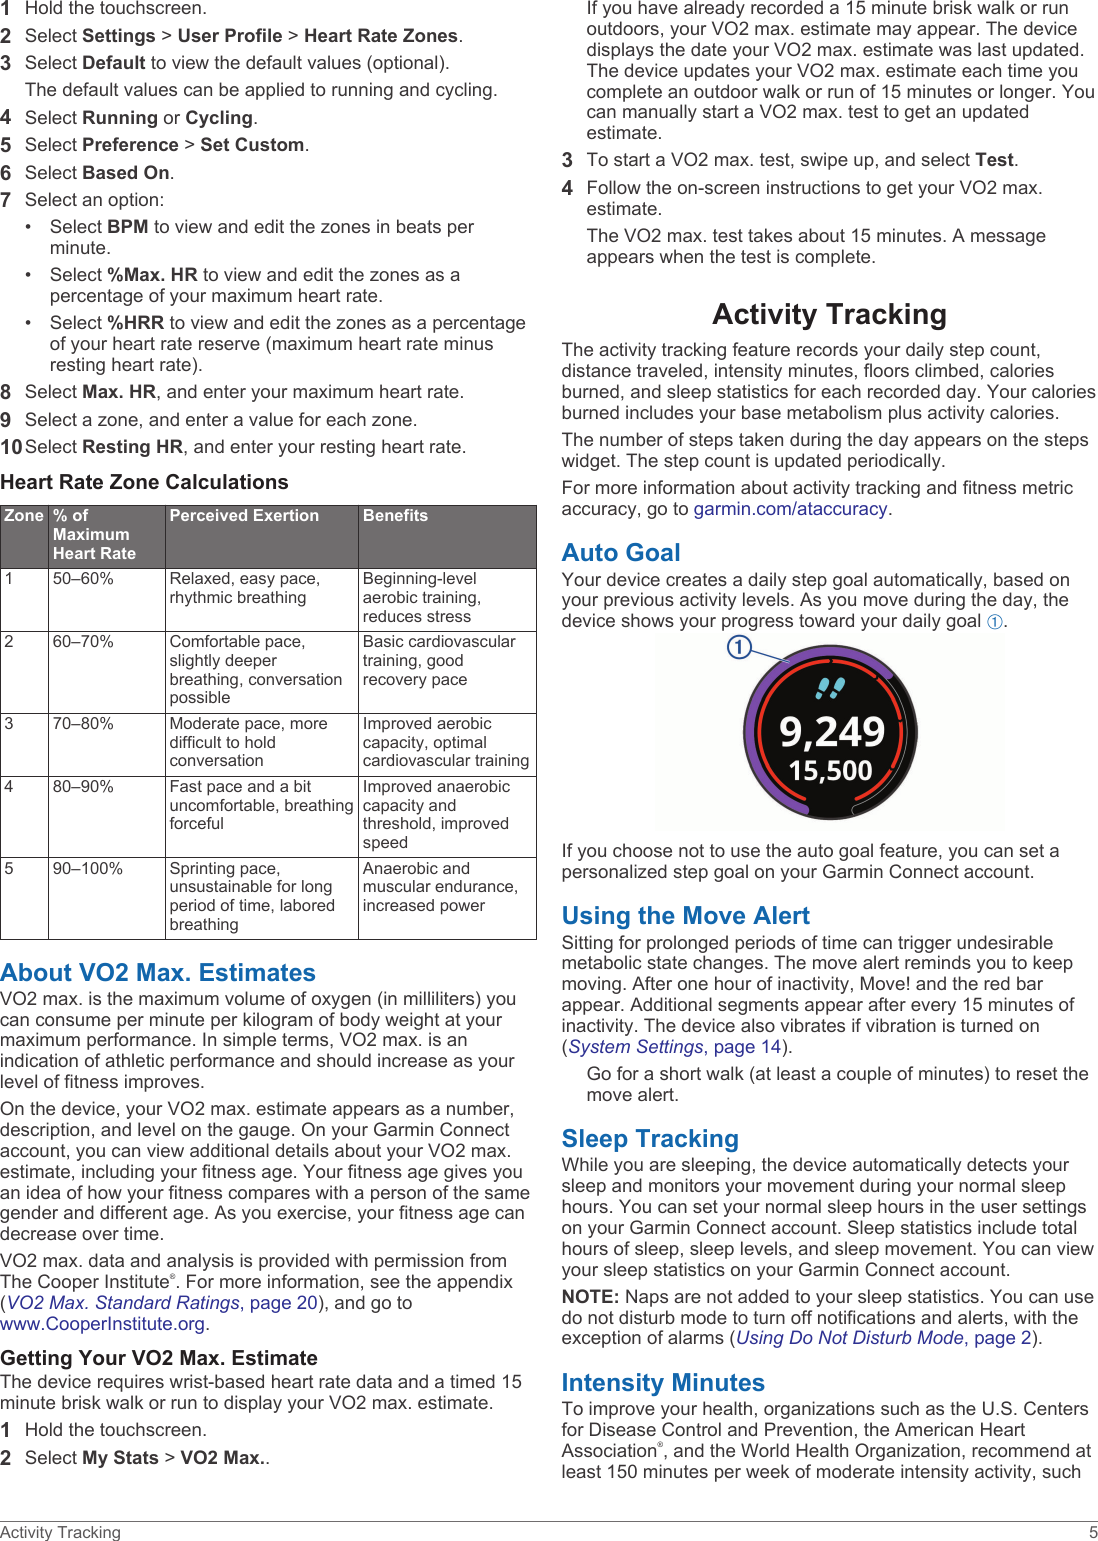 garmin vivoactive 3 user manual pdf